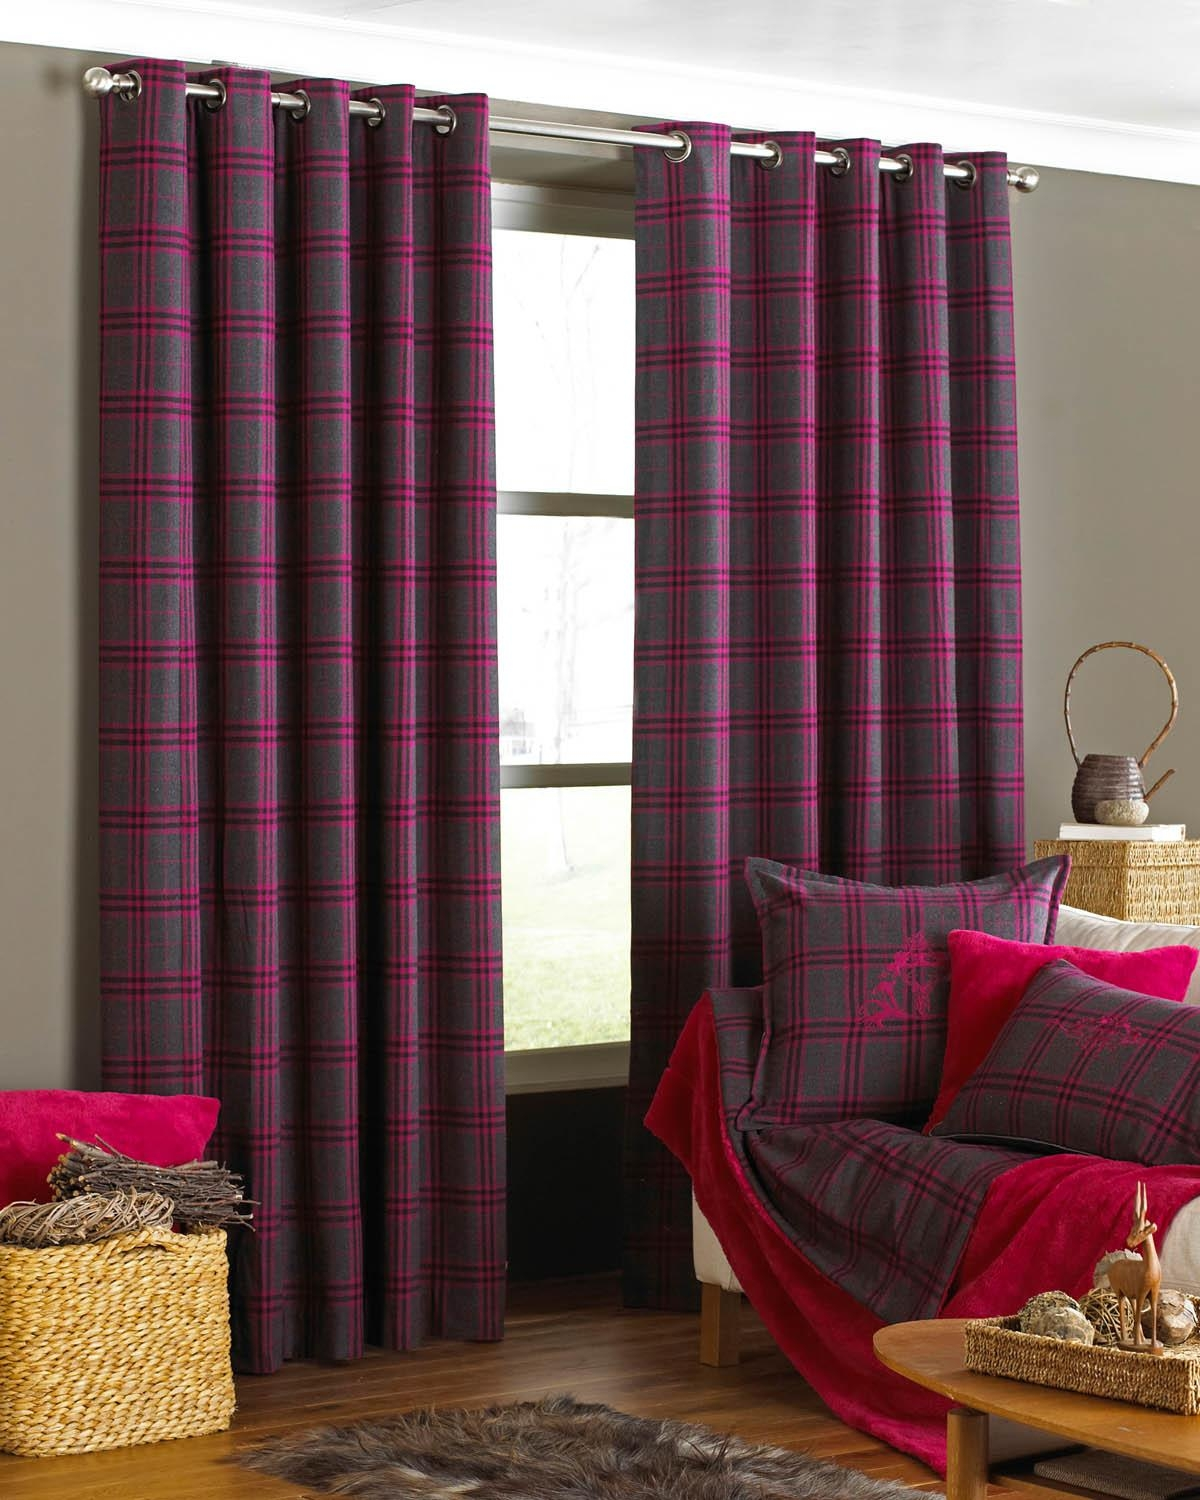 Superior Design Calm White Voile Curtains Great Amazement Linen In Purple And Gold Curtains (Image 23 of 25)